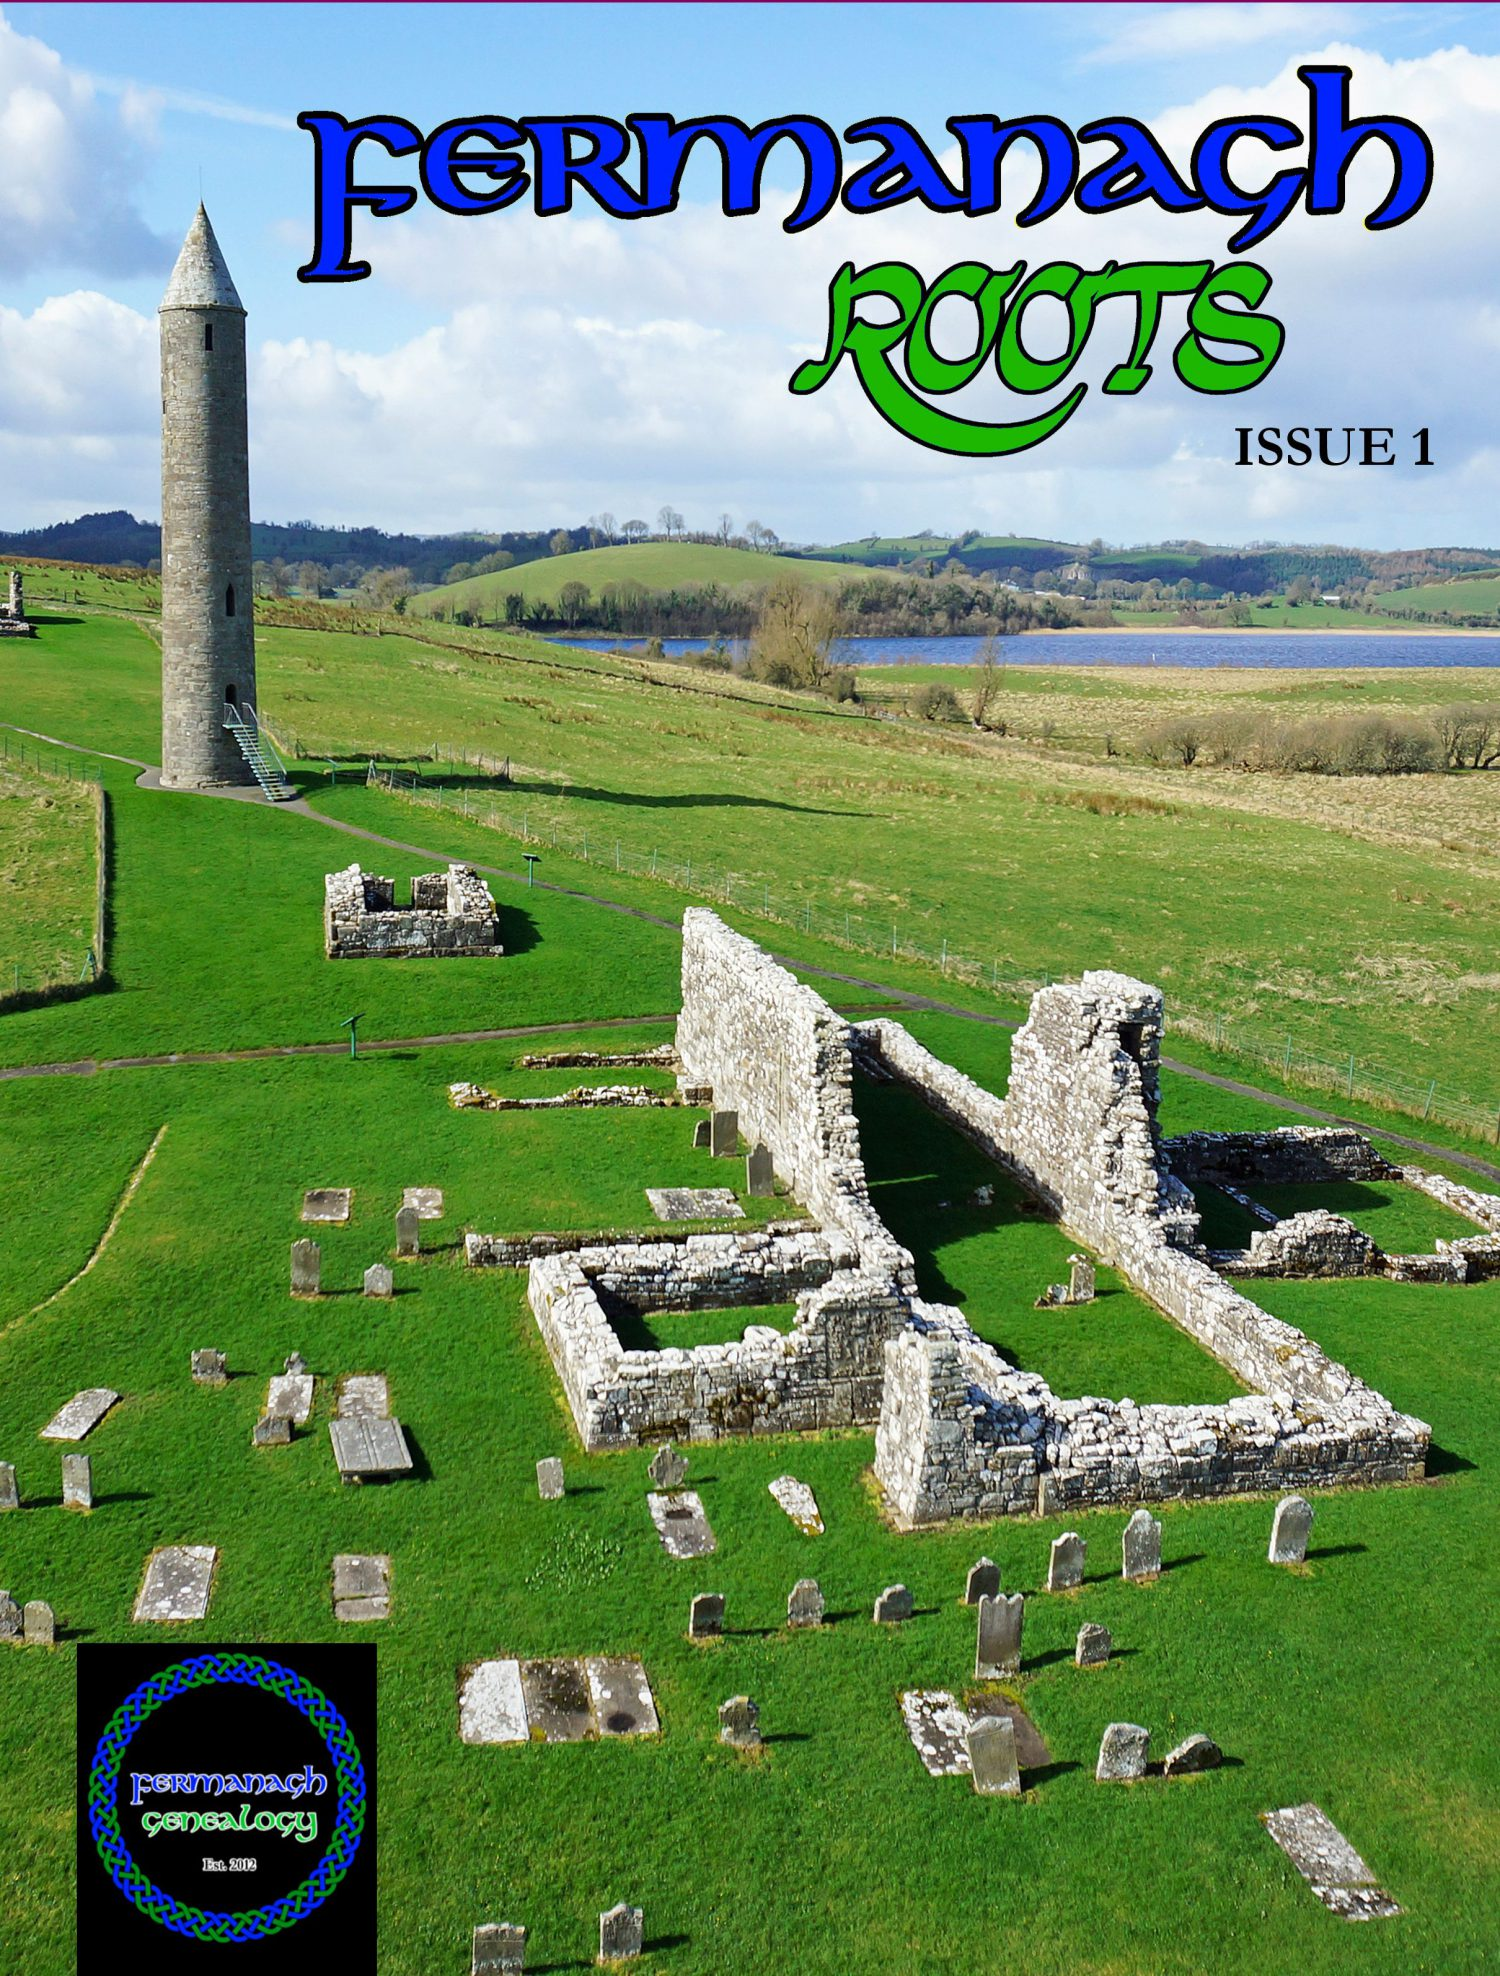 Fermanagh Roots - Issue 1